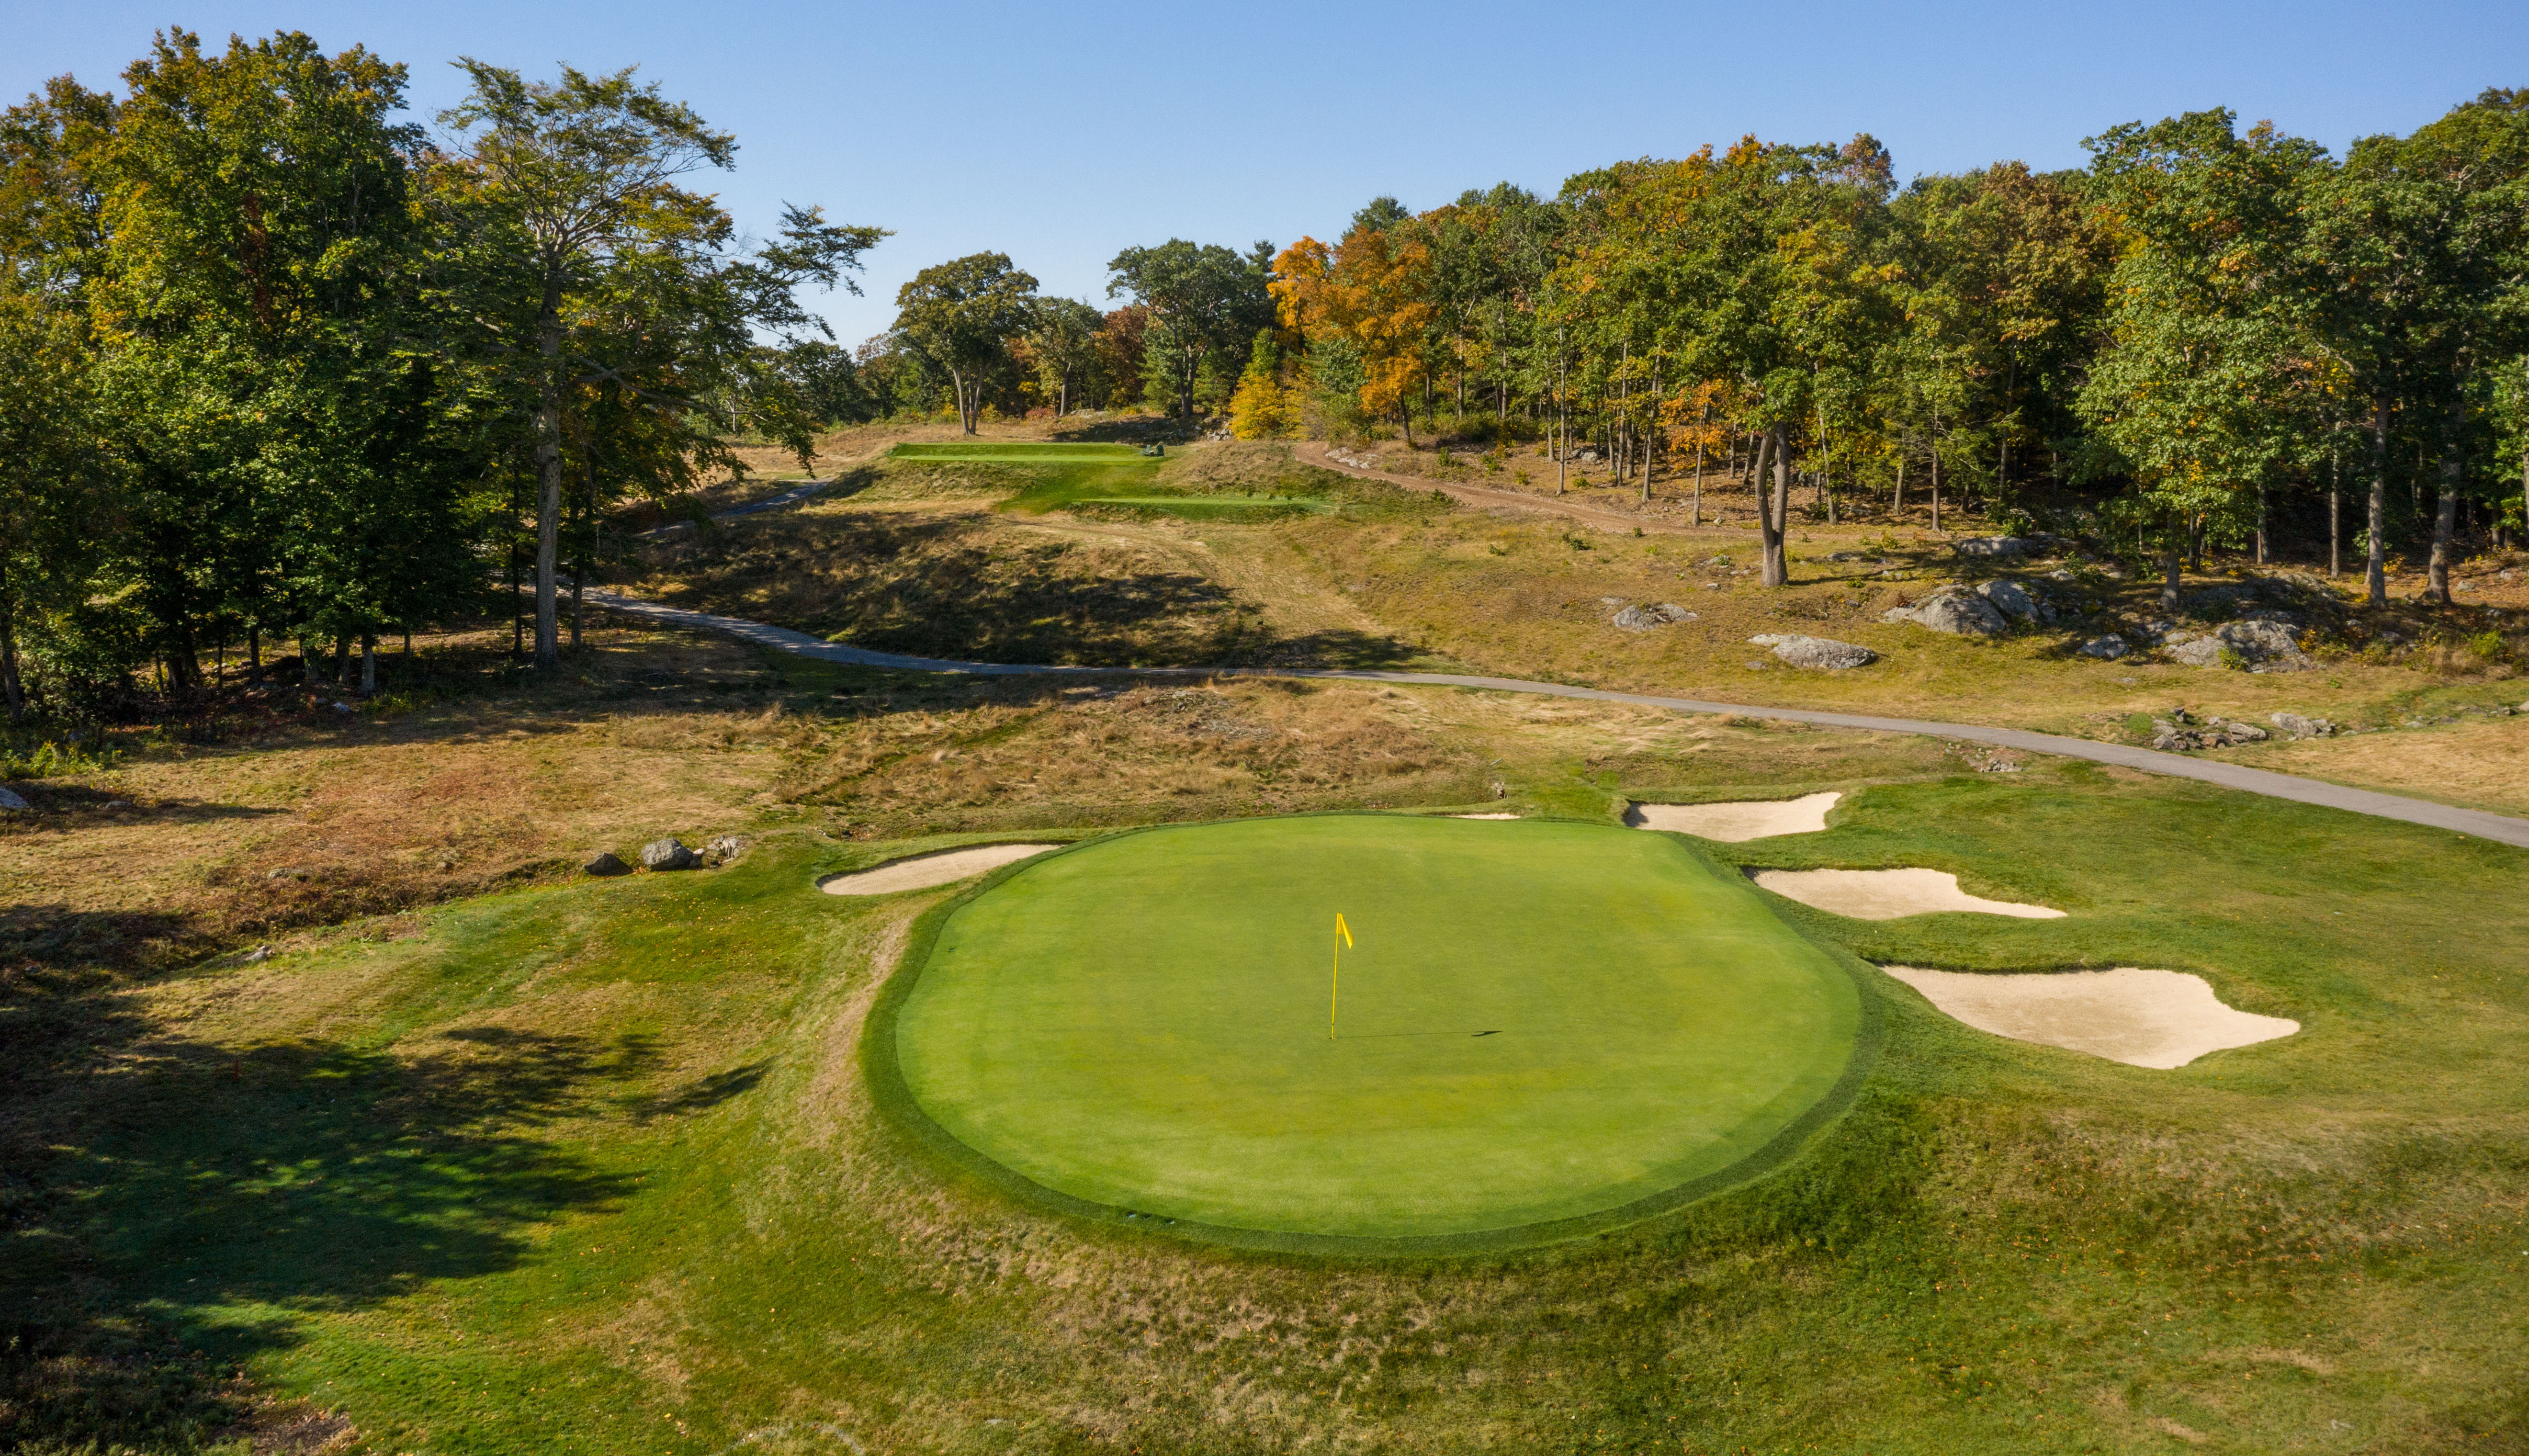 The 11th hole for the US Open 2022 is actually the 12th hole on the main course of the Country Club, which is a composite course of all the holes available for championship events.